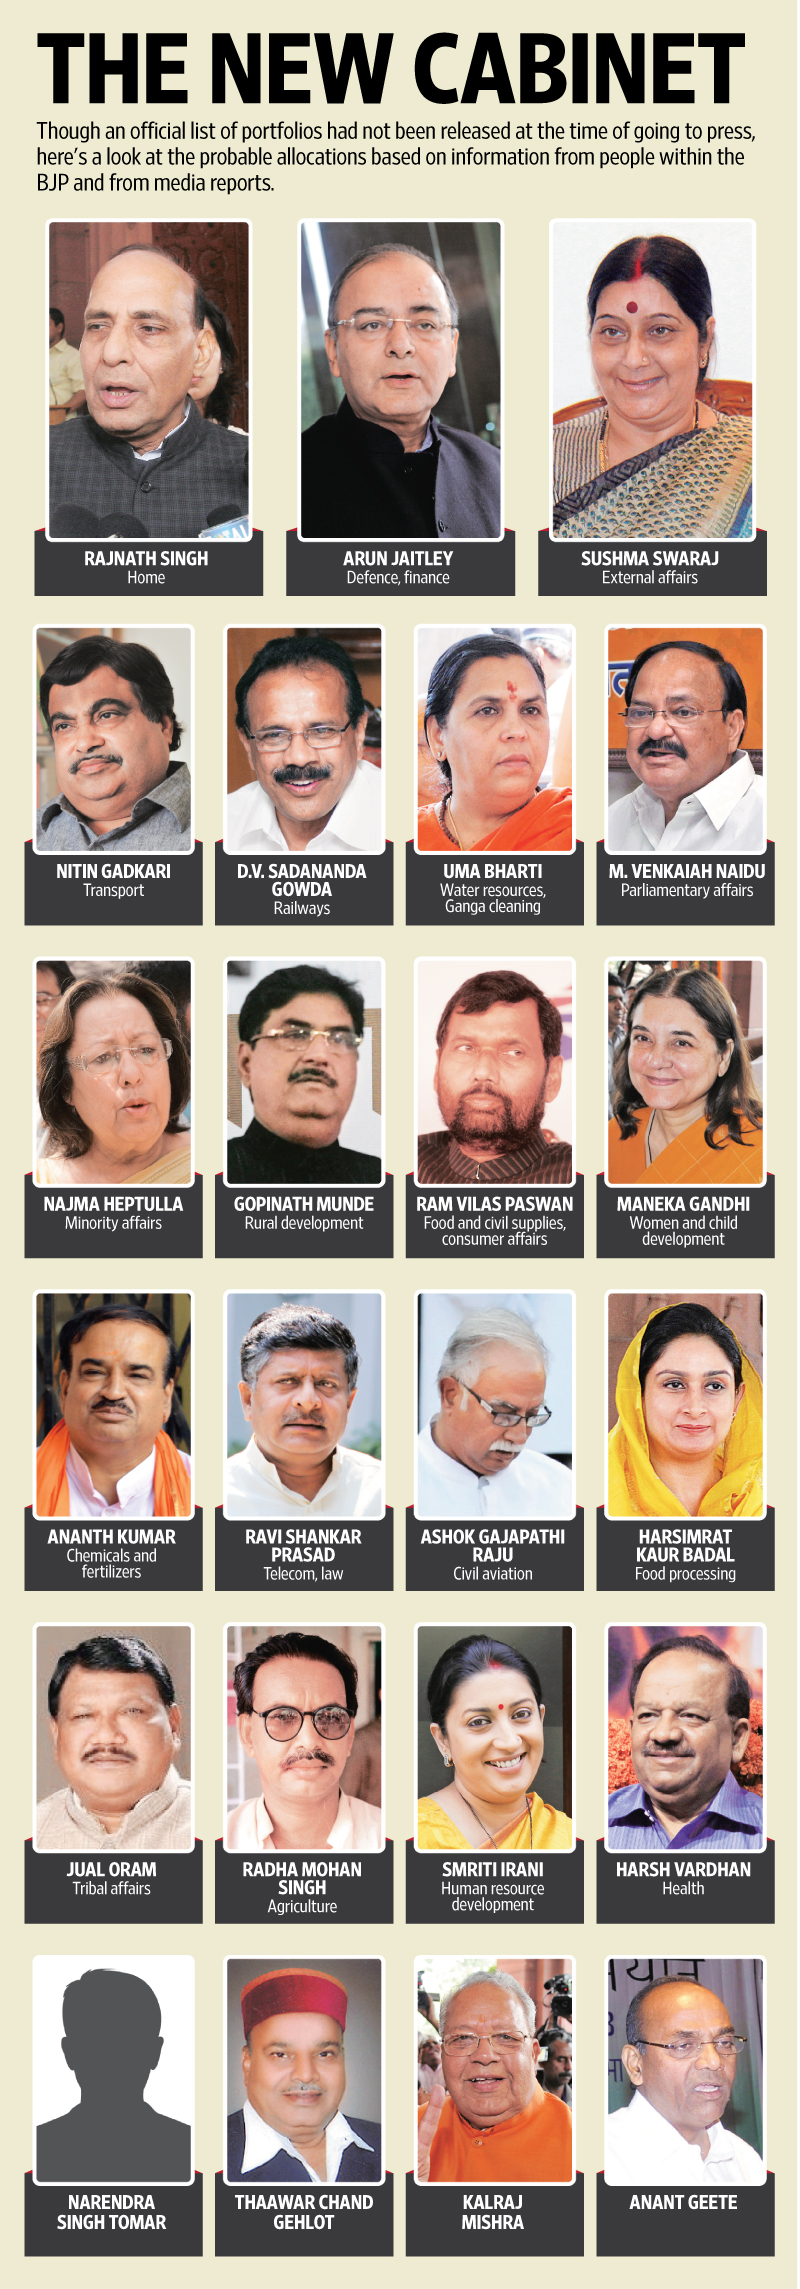 Cabinet Ministers Of India With Their Images Thesecretconsul Com Source Narendra Modi S Uttar Pradesh Maharashtra Get Most